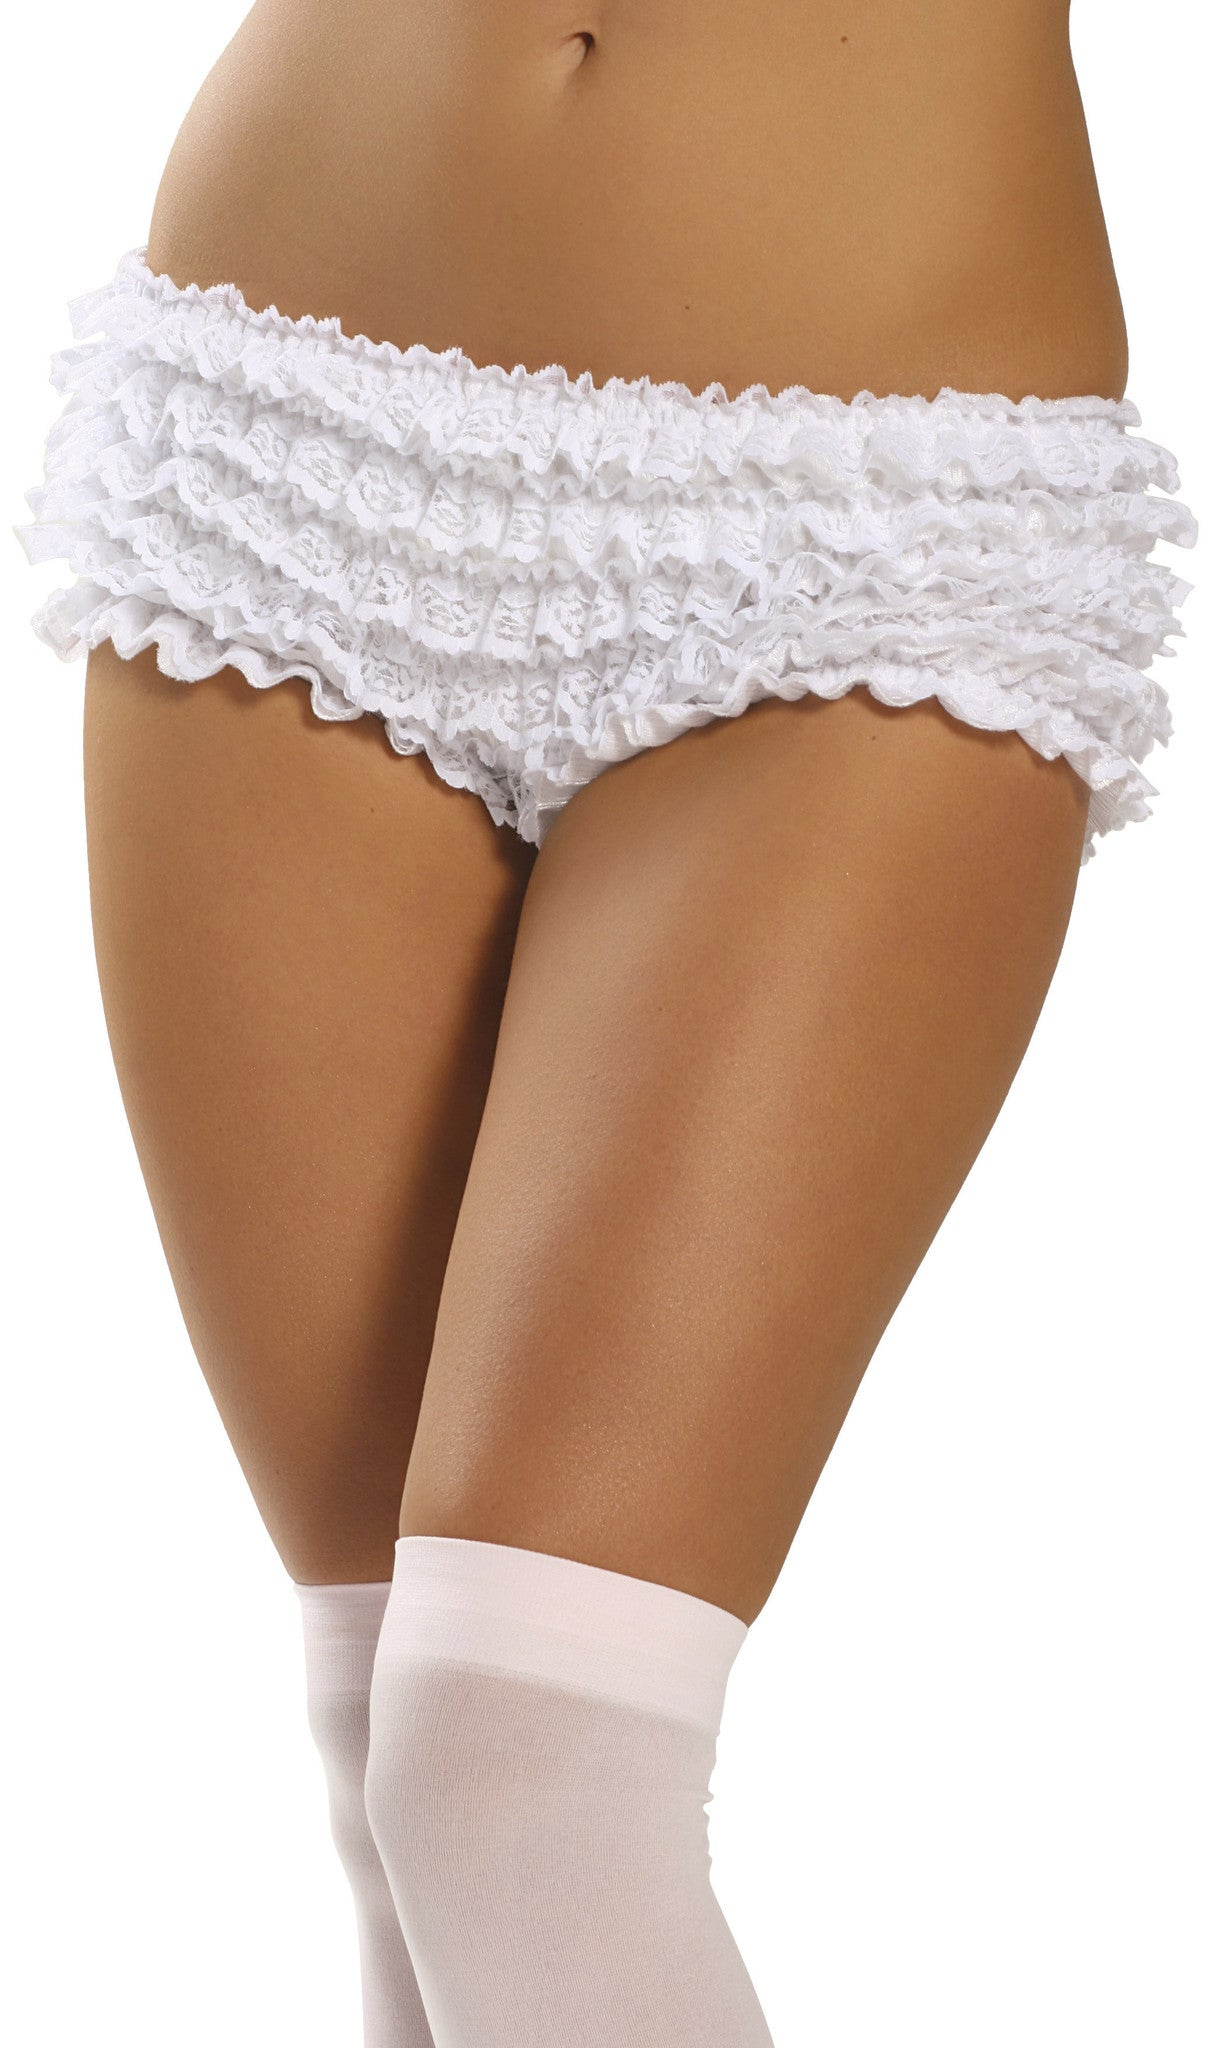 1364 - Ruffle Short ${description} | Roma Costume and Roma Confidential wholesale manufacturer of Women Apparel bulk world wide wholesale and world wide drop ship services for Adult Halloween Costumes, Sexy and Elegant Lingerie, Rave Clothing, Club wear, and Christmas Costumes. Shorts,Blowout Sale, Roma Costume, Inc., Roma Costume, Roma Confidential, Wholesale clothing, drop ship, drop ship service, Wholesale Lingerie, Wholesale Adult Halloween Costumes, Rave Clothing, EDM Clothing, Festival Wear, Christmas Costumes, Clubwear, Club wear.